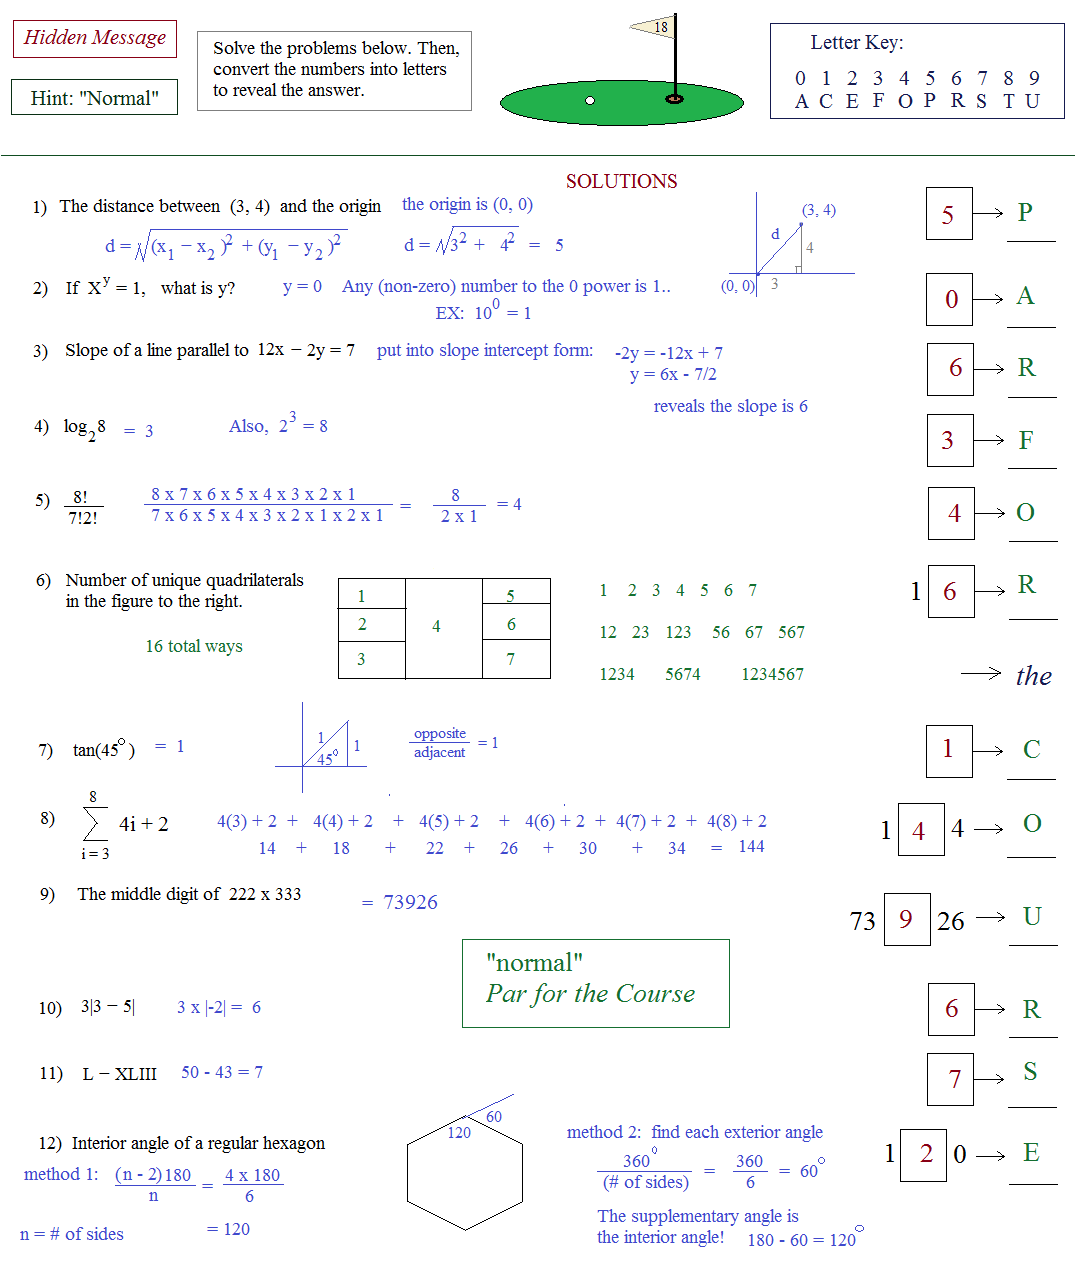 Worksheets Act Math Worksheets printables act math worksheets joomsimple thousands of printable davezan worksheet kerriwaller worksheets